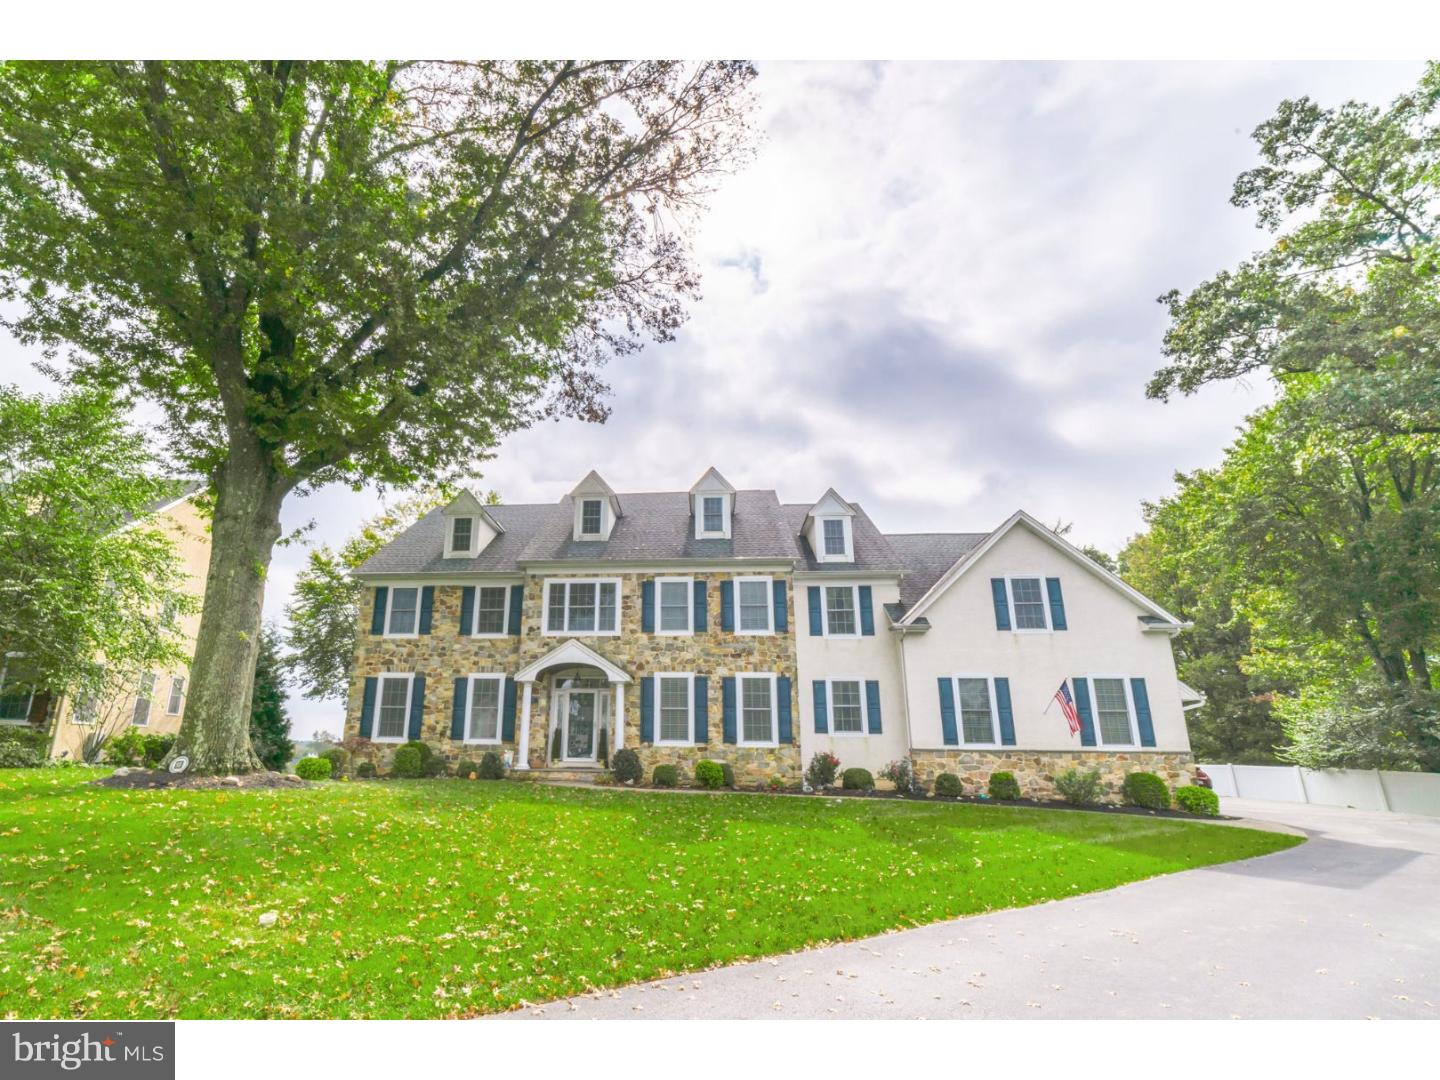 1509 Sorber Drive West Chester, PA 19380